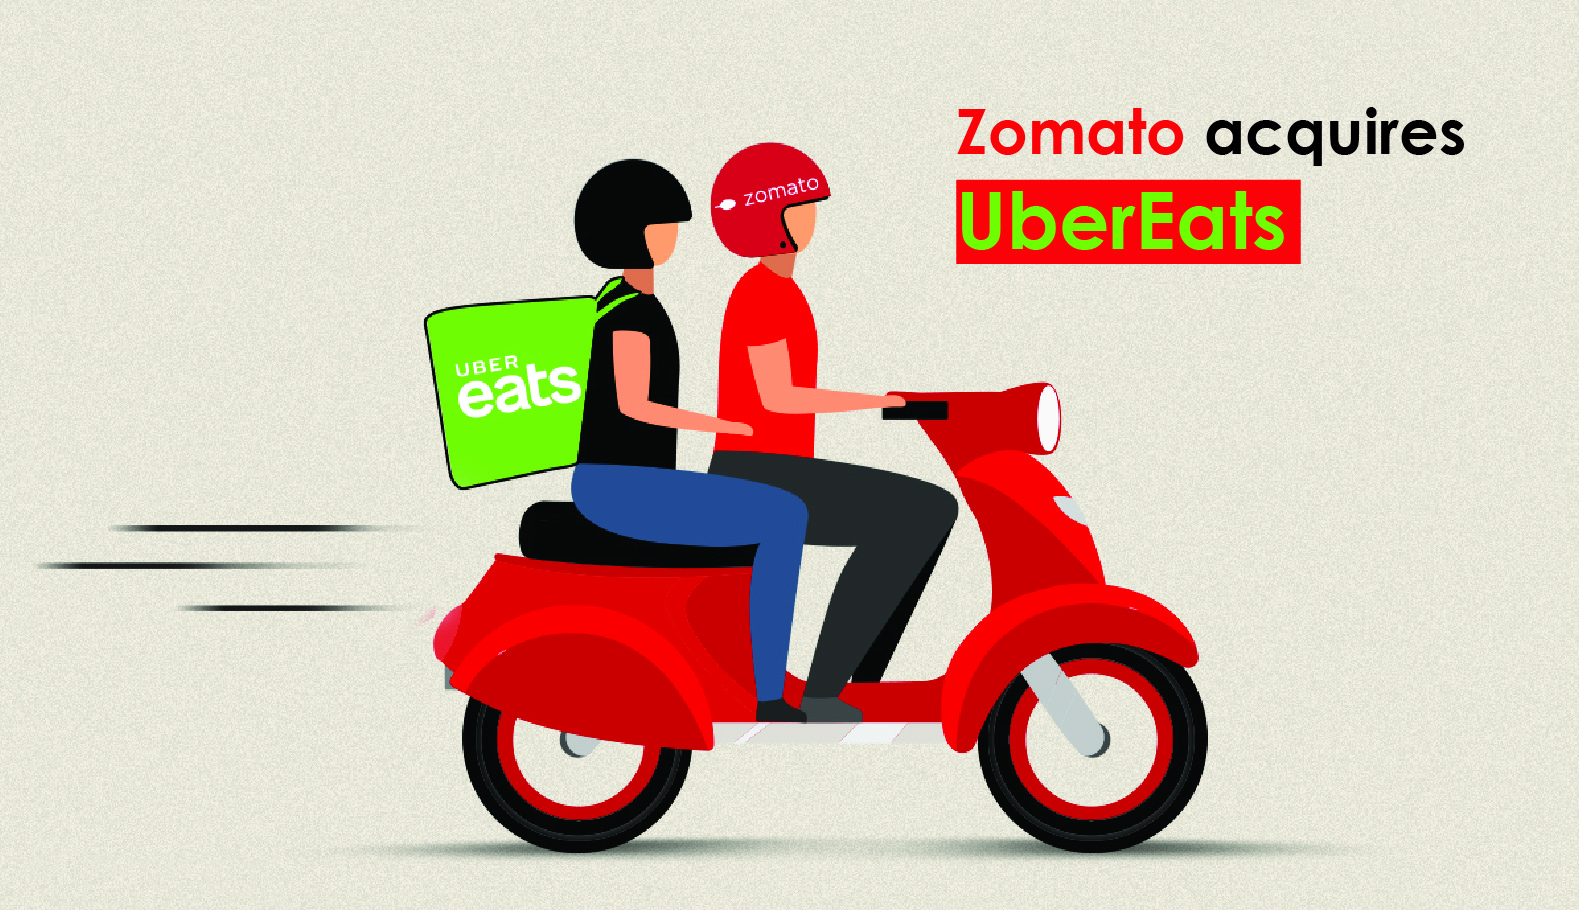 The Battle between Uber Eats and Zomato comes to an End